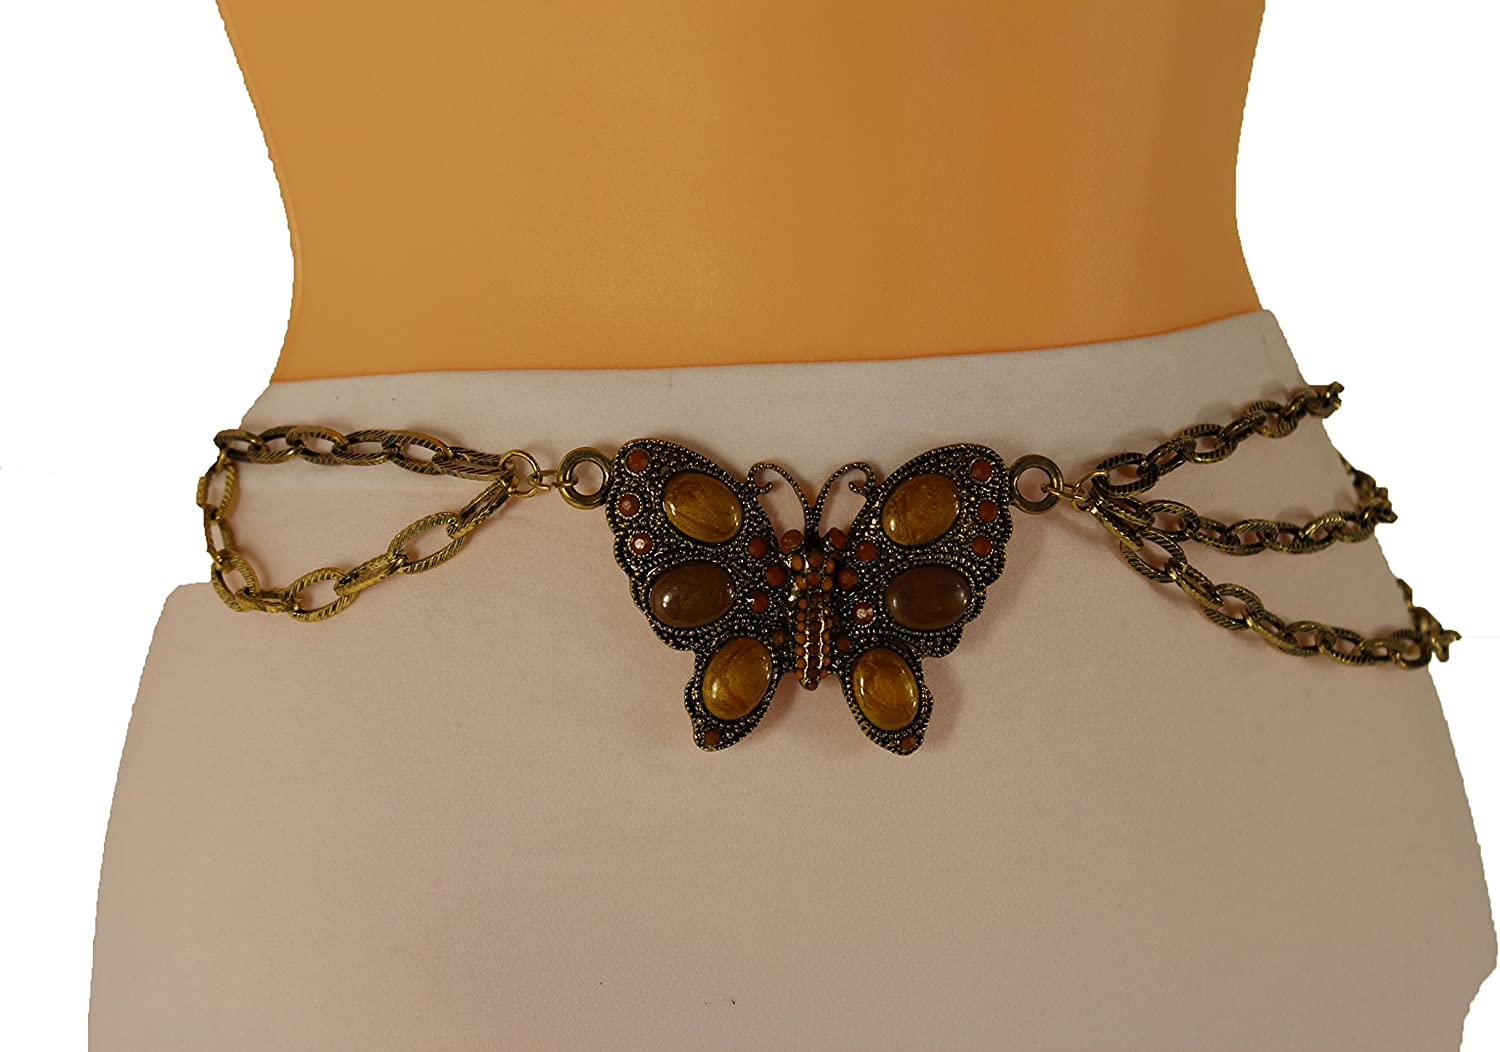 Women Wide Belt Hip Waist Gold Brown Metal Chain Butterfly Charm Fashion S M L